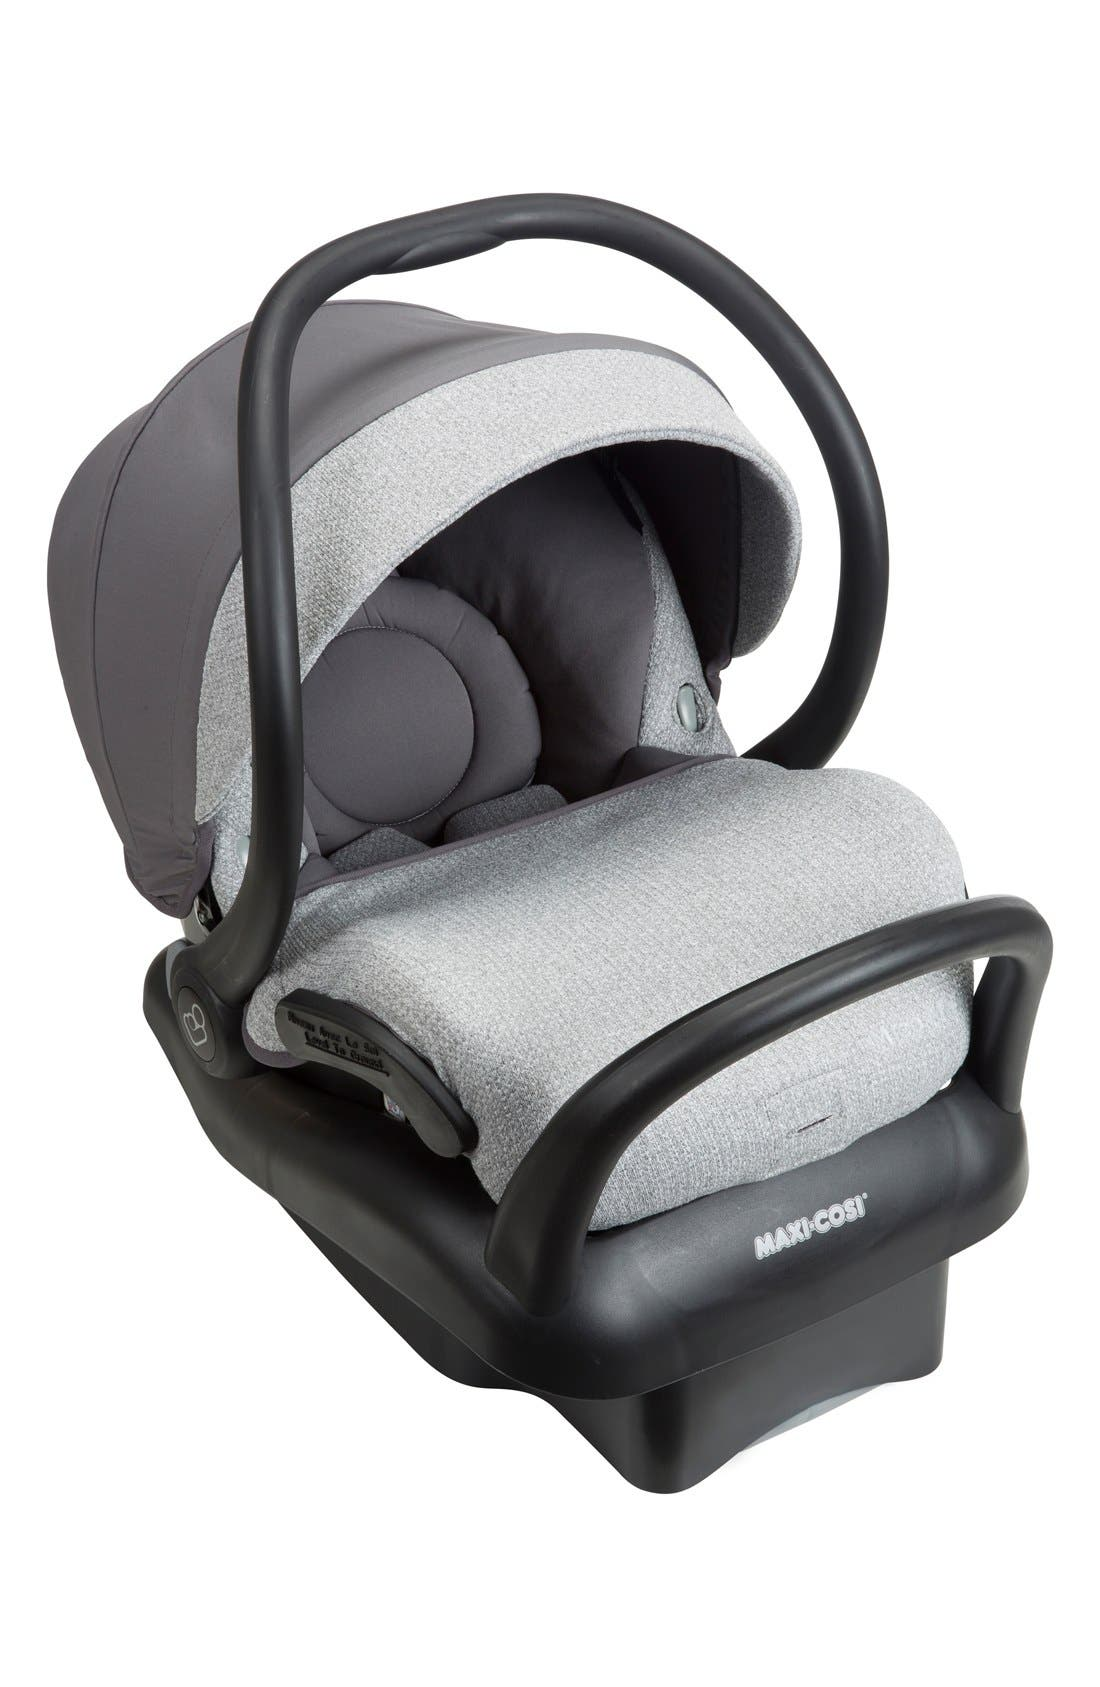 'Mico Max 30 - Sweater Knit Special Edition' Infant Car Seat,                             Alternate thumbnail 4, color,                             020